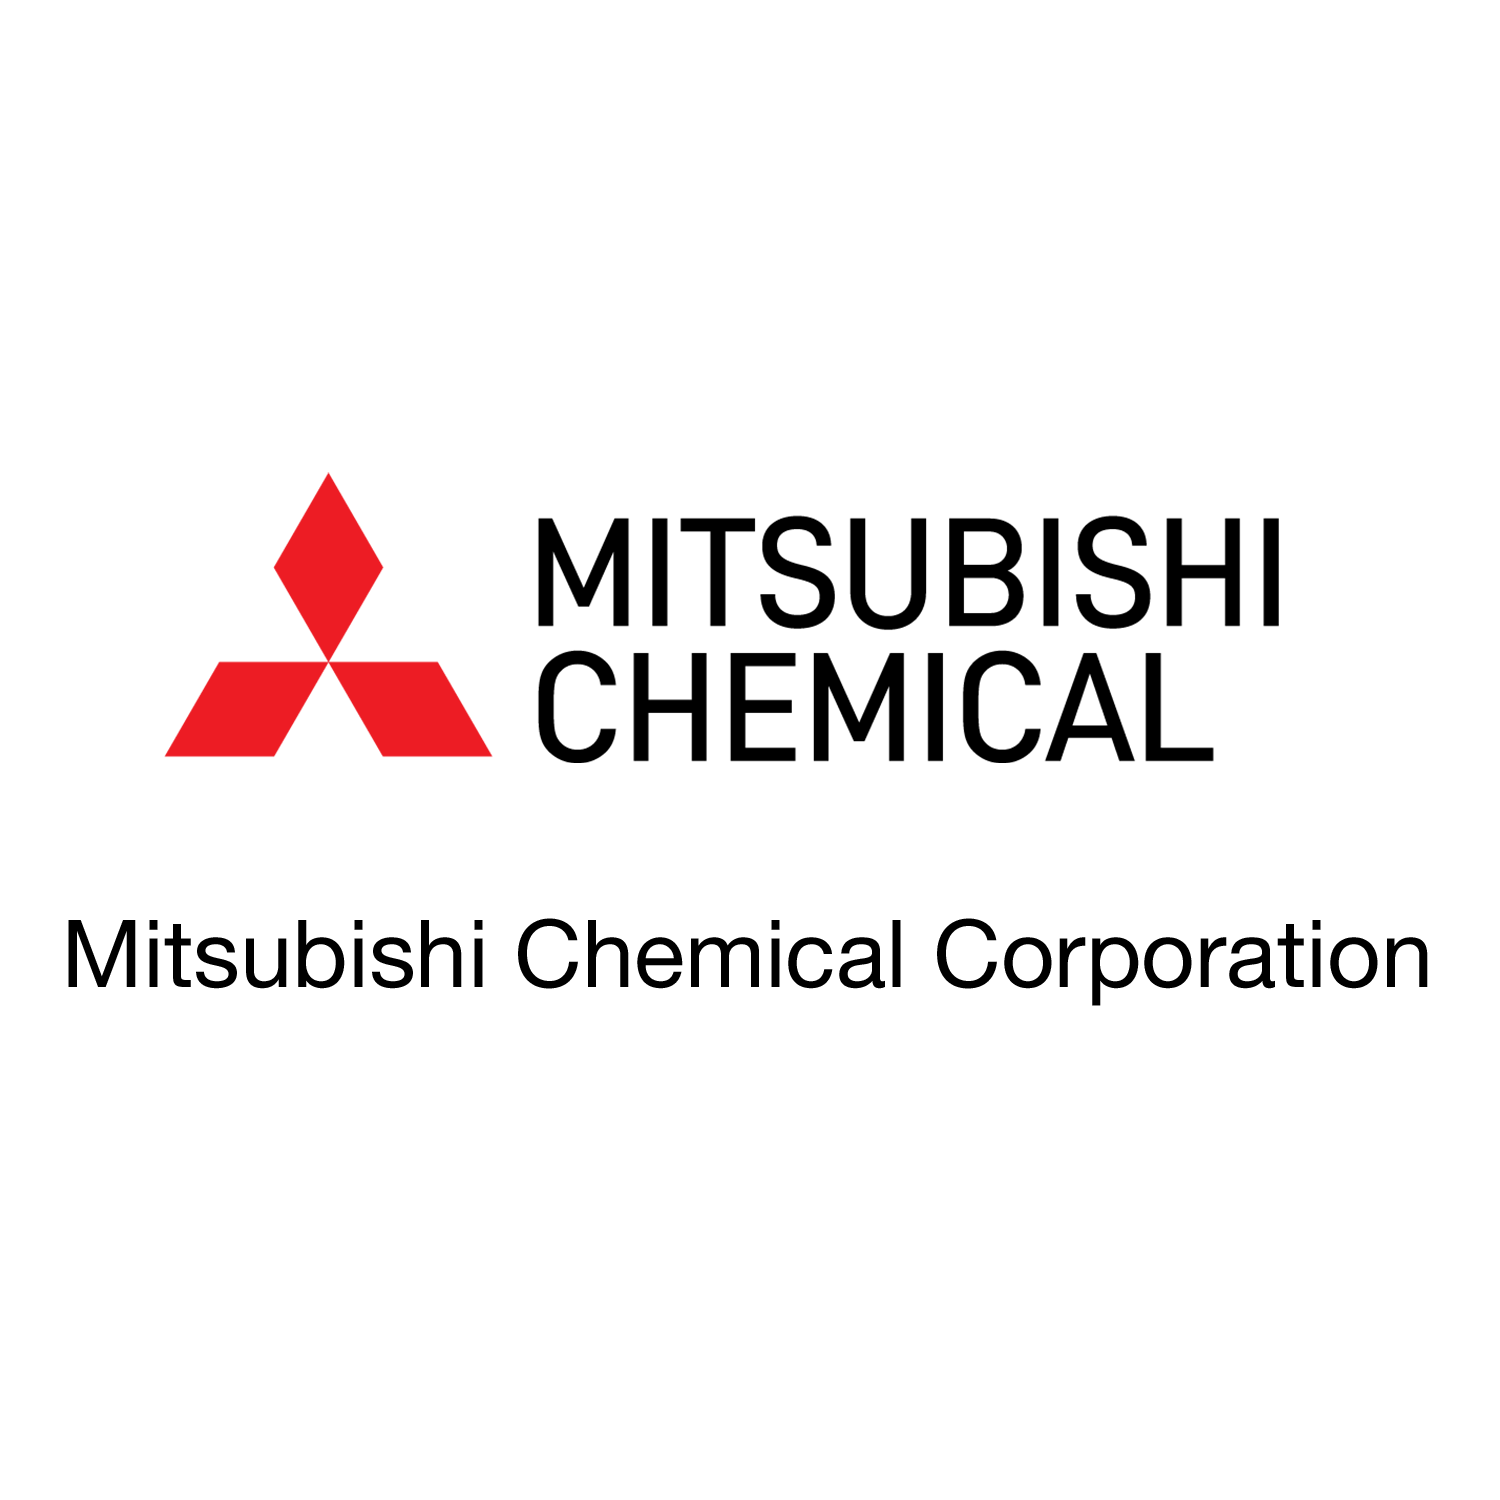 Mitsubishi Chemical Corporation